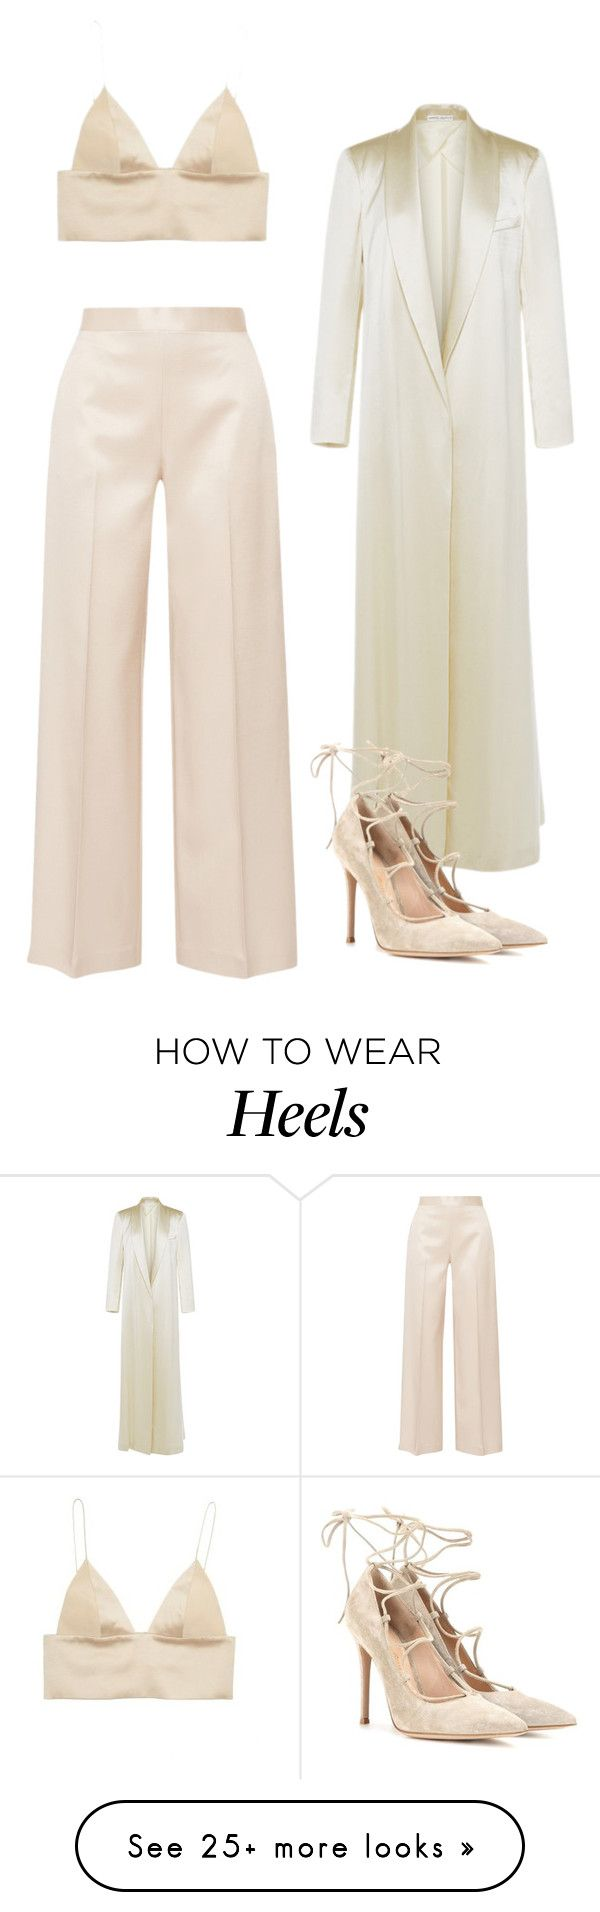 """SILK BRALETT AND HEELS"" by northwood on Polyvore featuring The Row, T By Alexander Wang, Barbara Casasola and Gianvito Rossi"